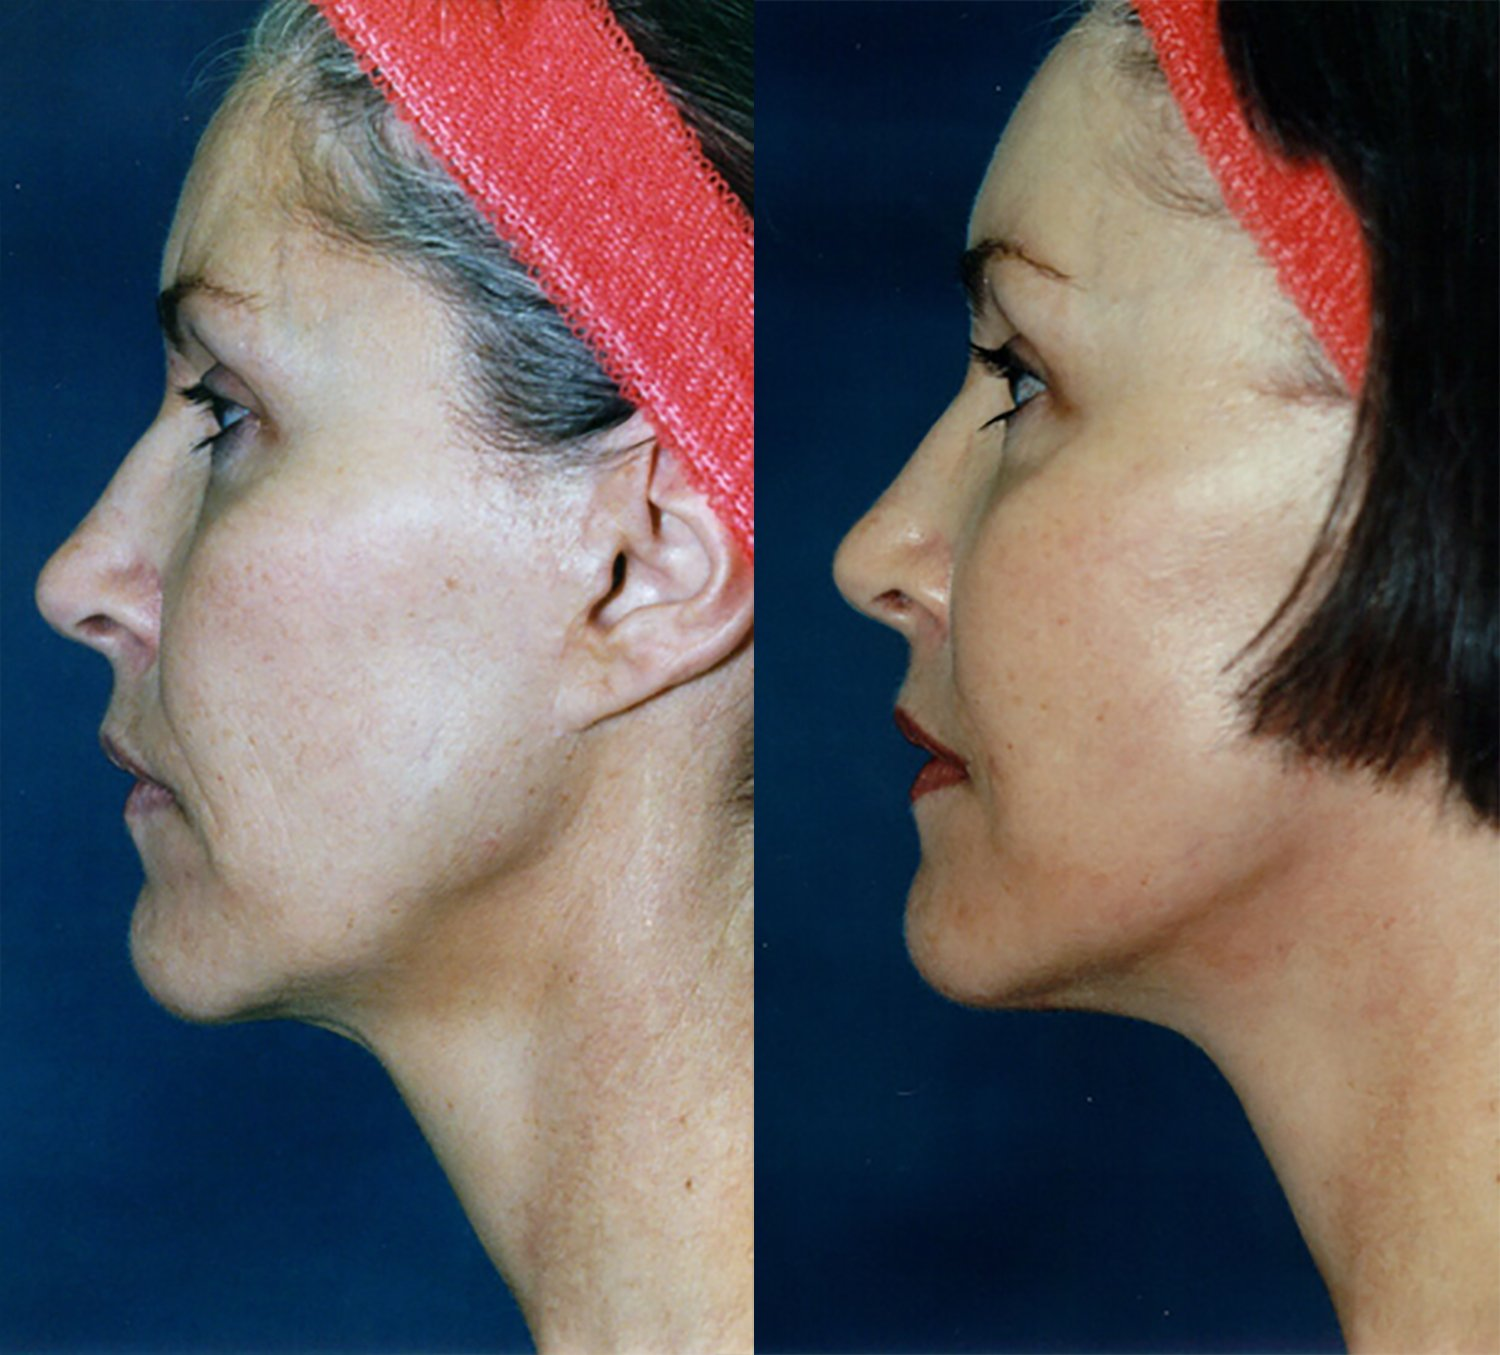 56-year-old facelift browlift 12 months side